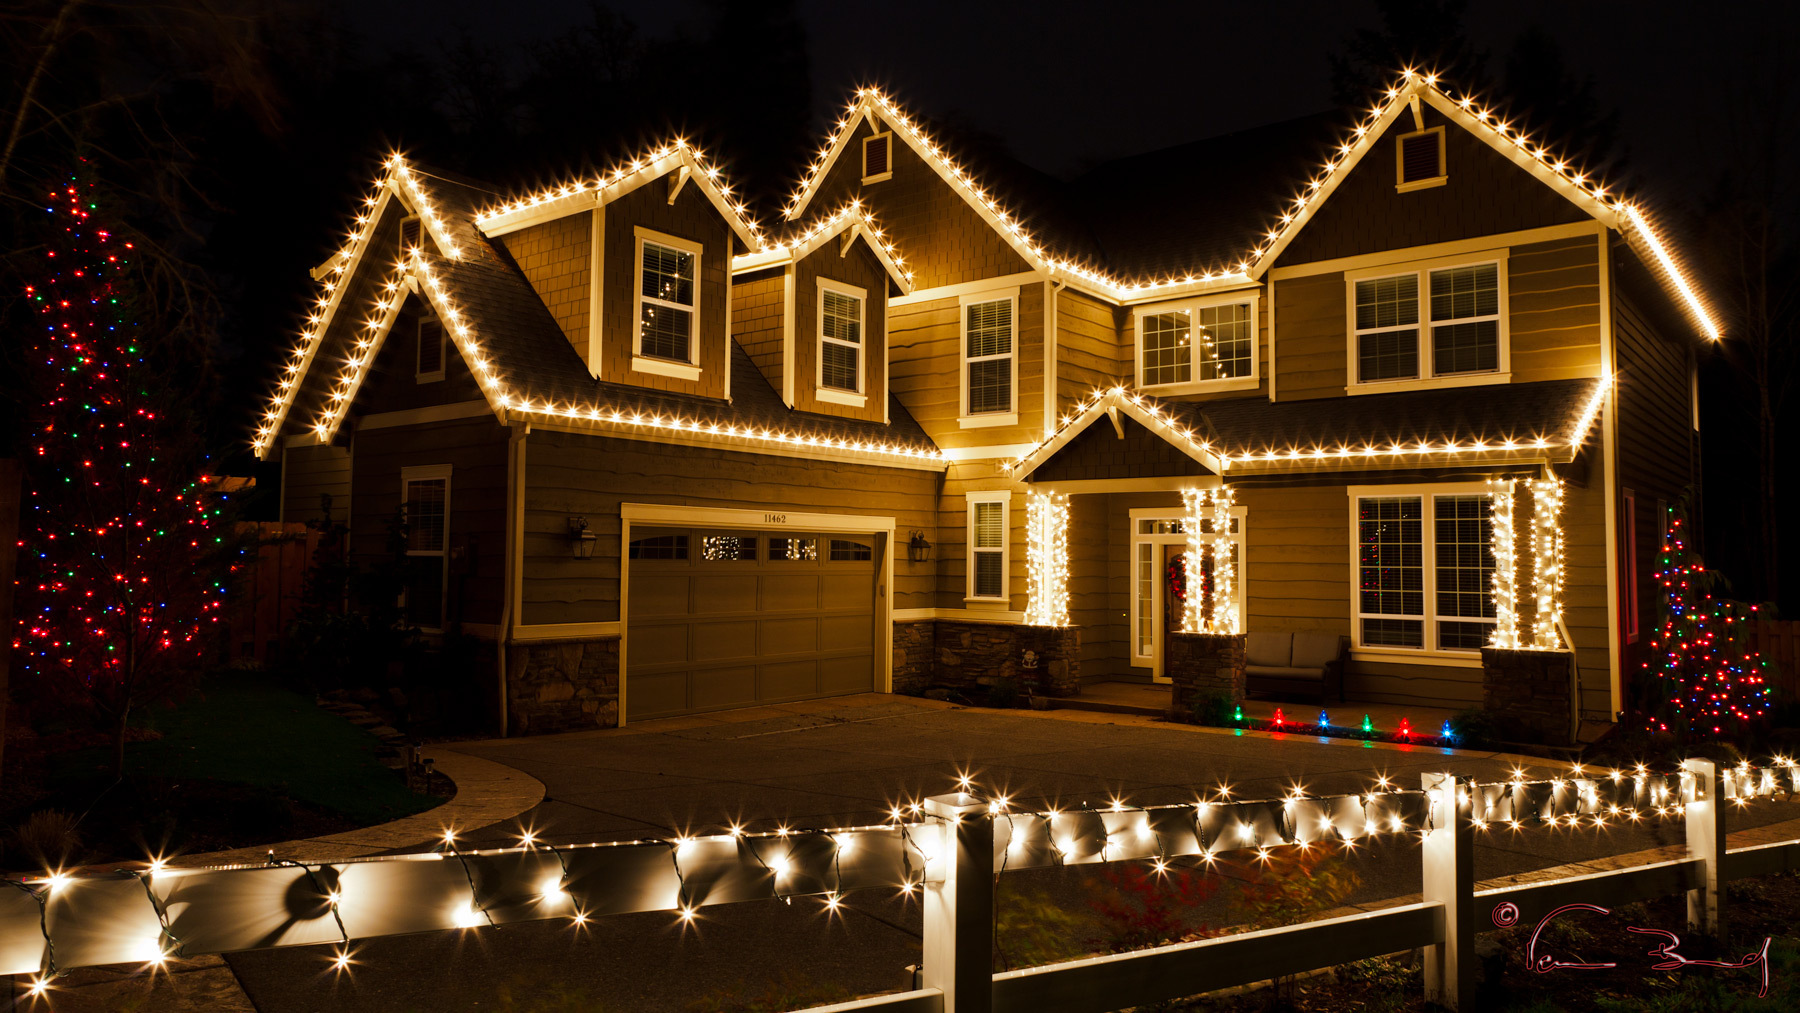 House Christmas Light Ideas